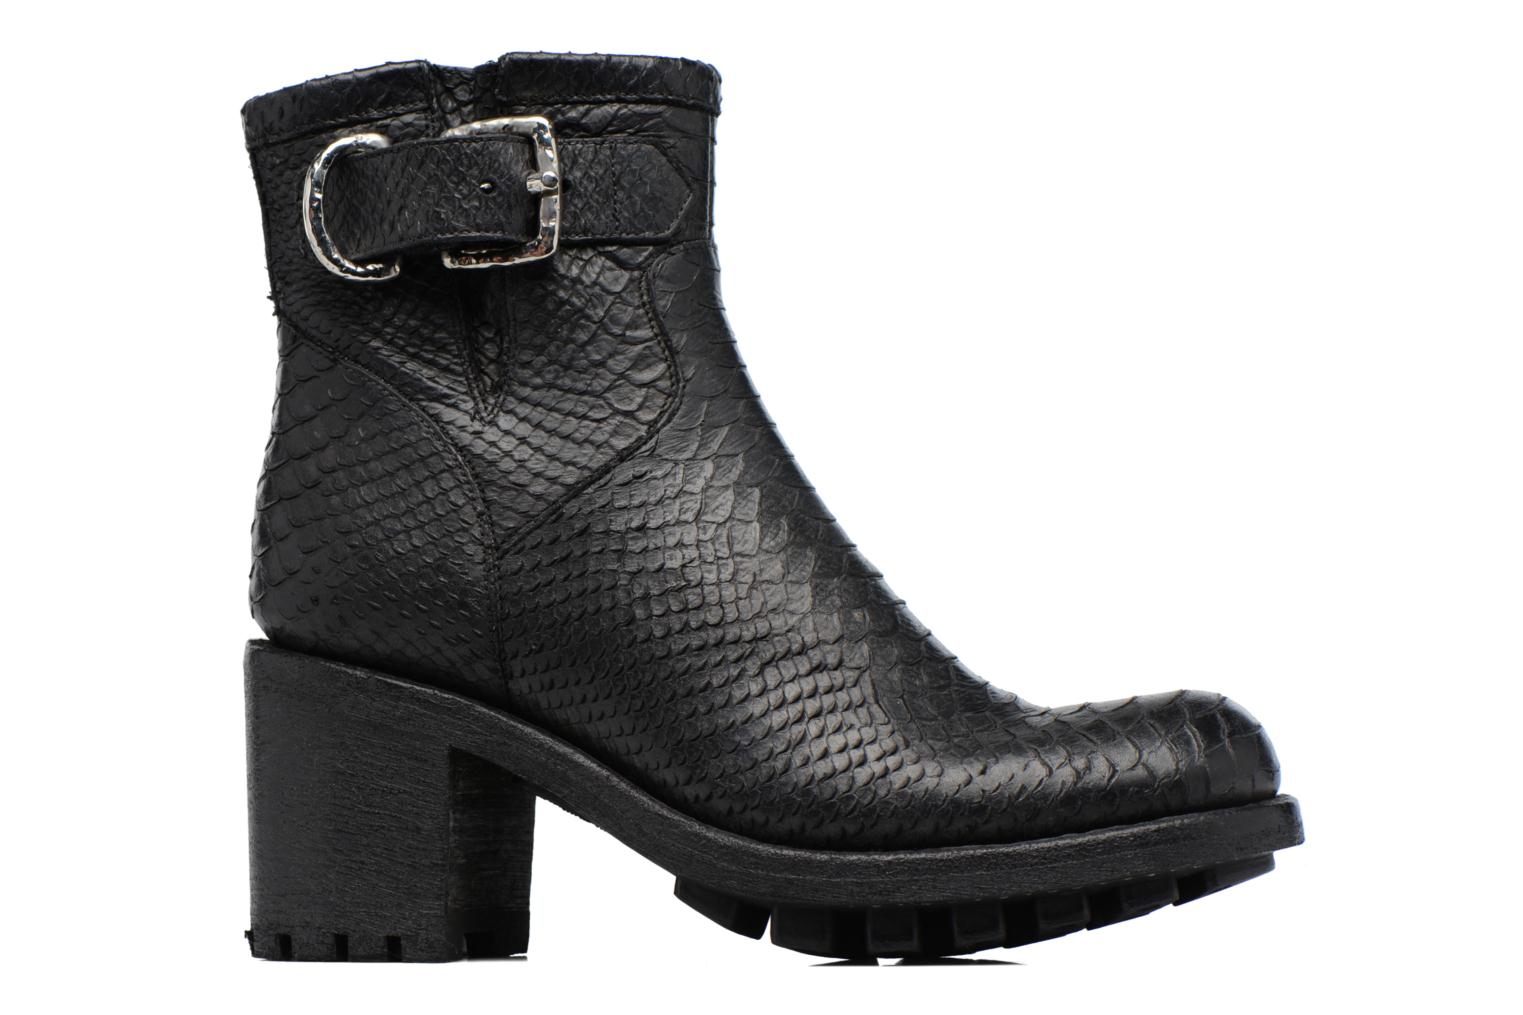 Justy 7 Small Gero Buckle Diamente Wash Noir